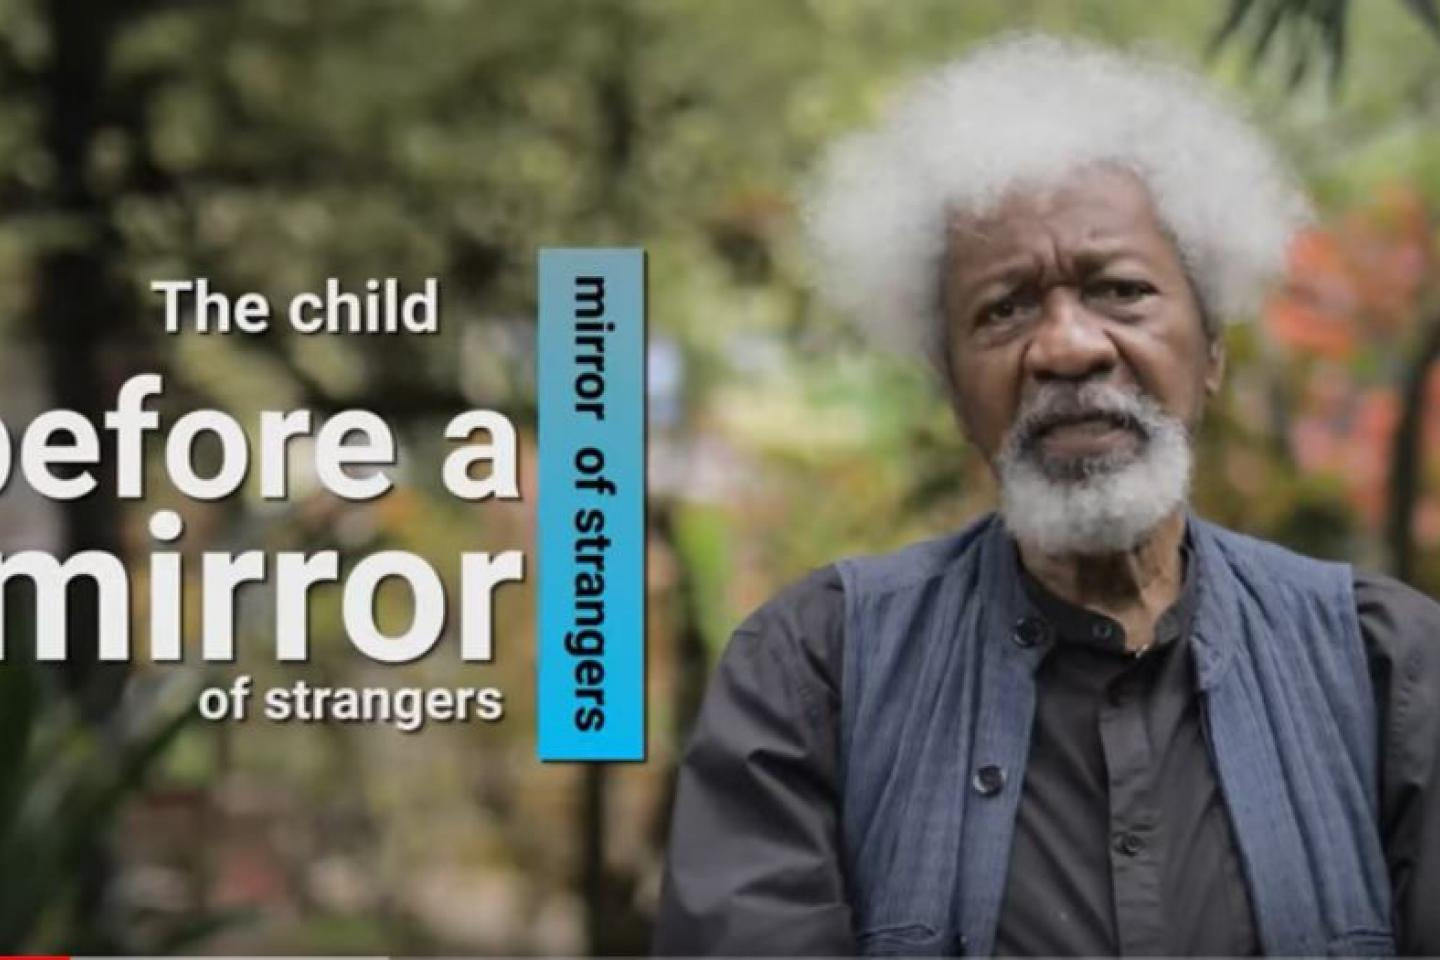 The Child Before a Mirror of Strangers: A poem by Nigerian Nobel Laureate, Prof. Wole Soyinka | UNICEF Nigeria